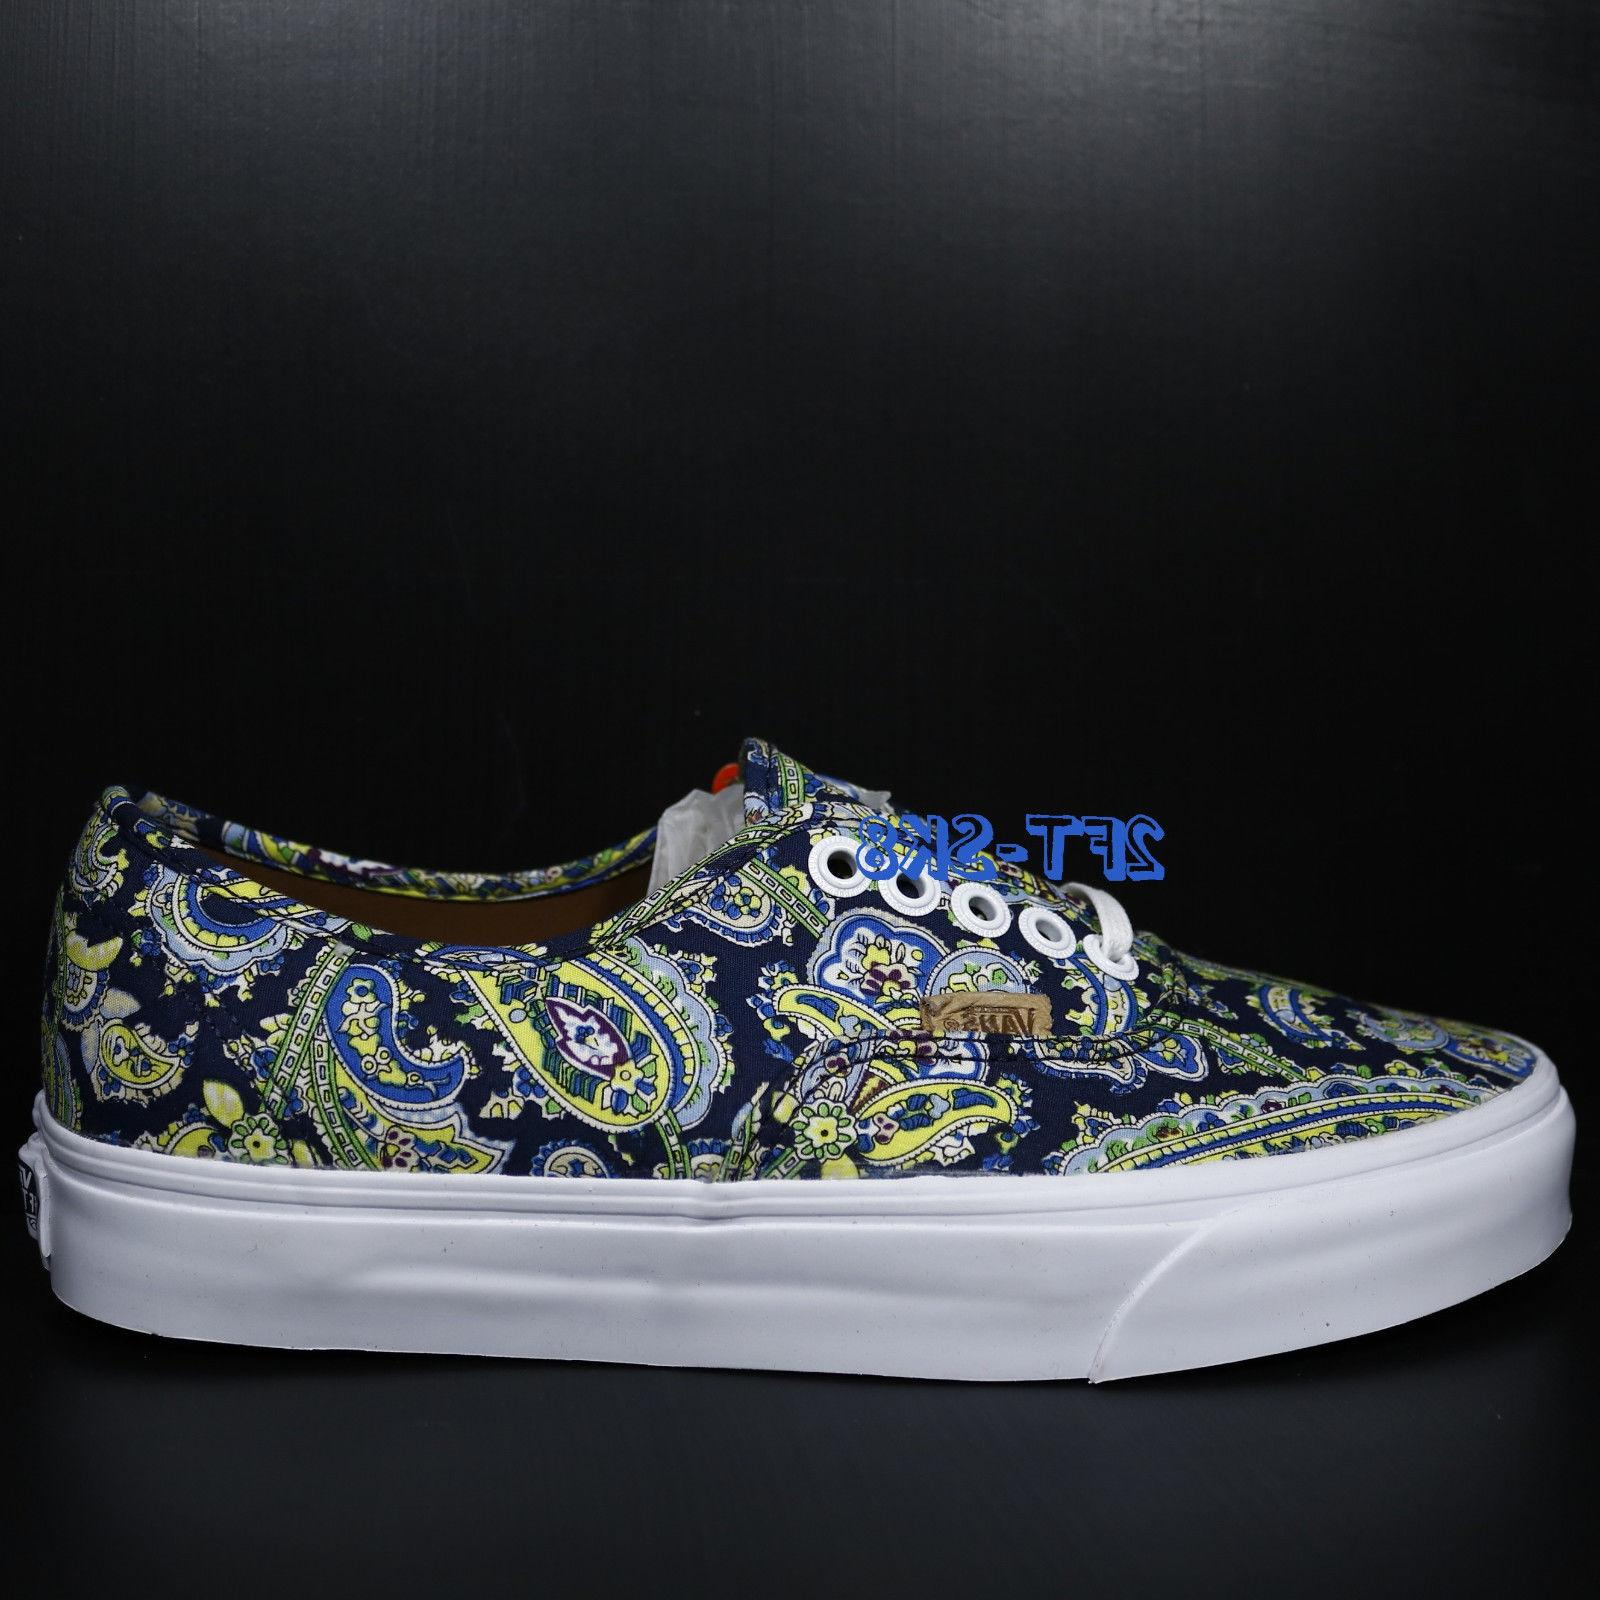 VANS AUTHENTIC BLUES SHOES /era S89117.17